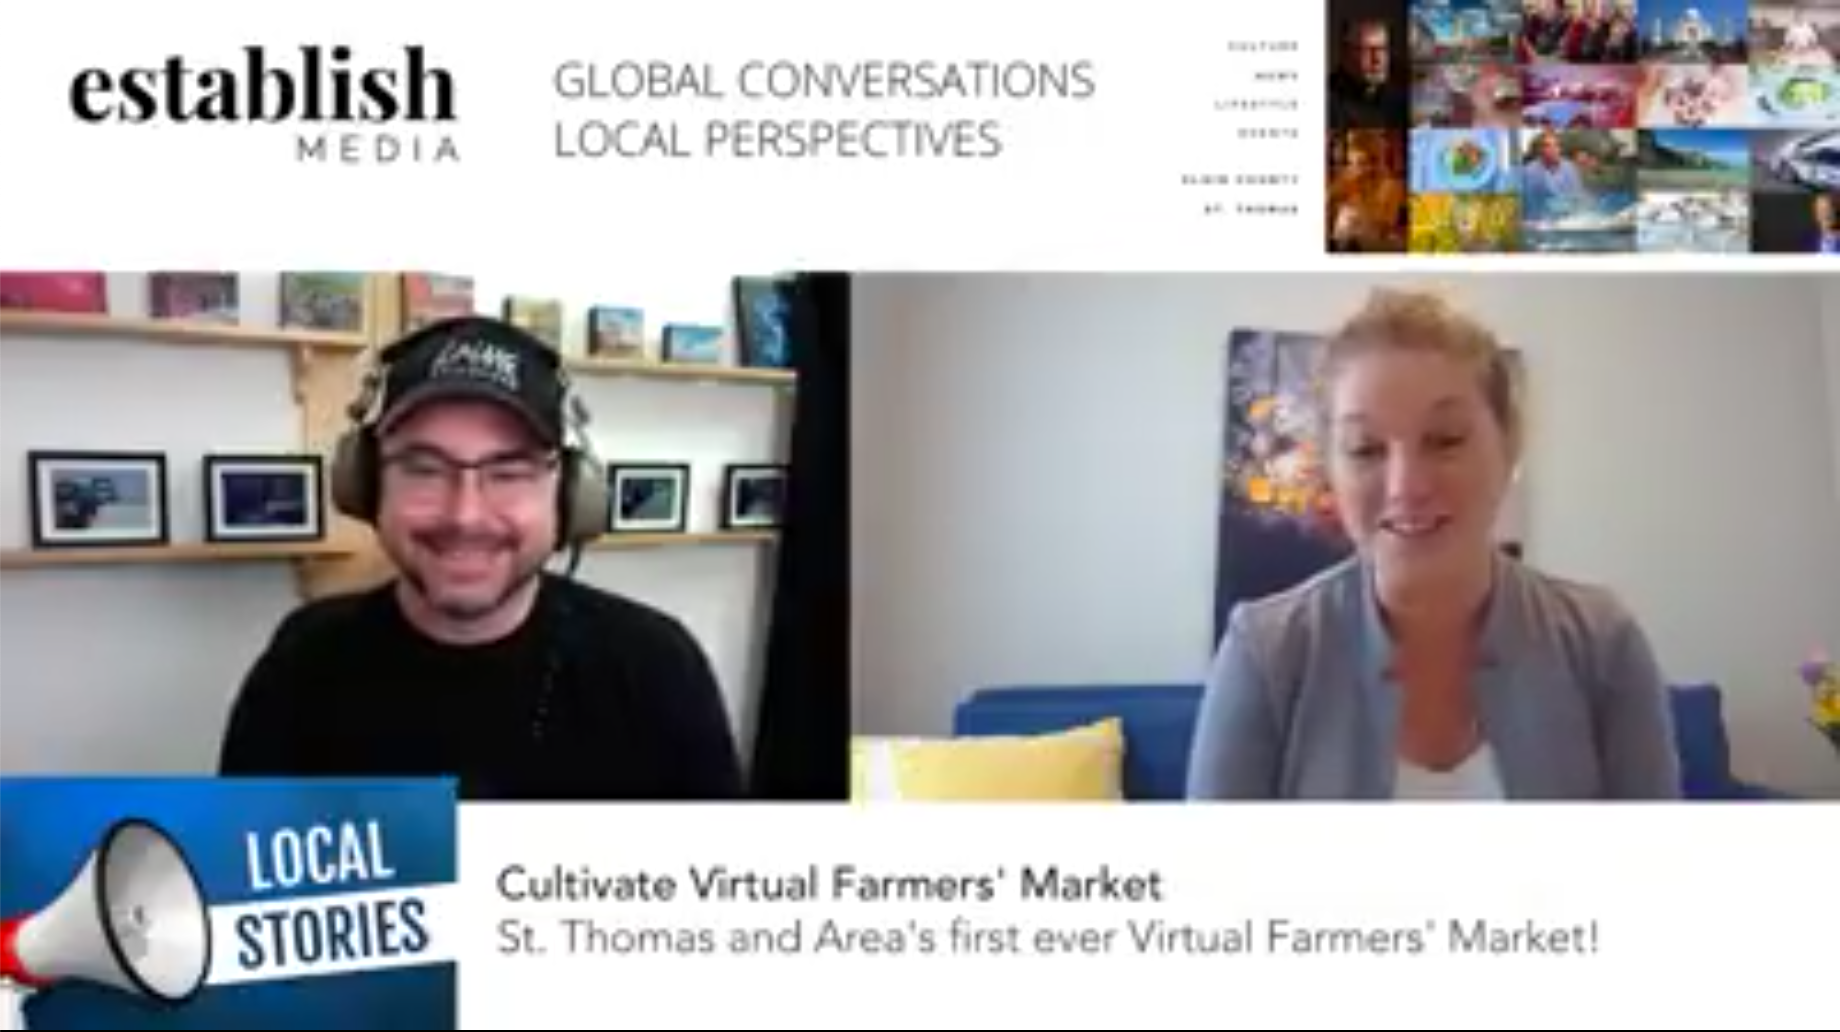 St. Thomas and Area's first ever Virtual Farmers' Market!